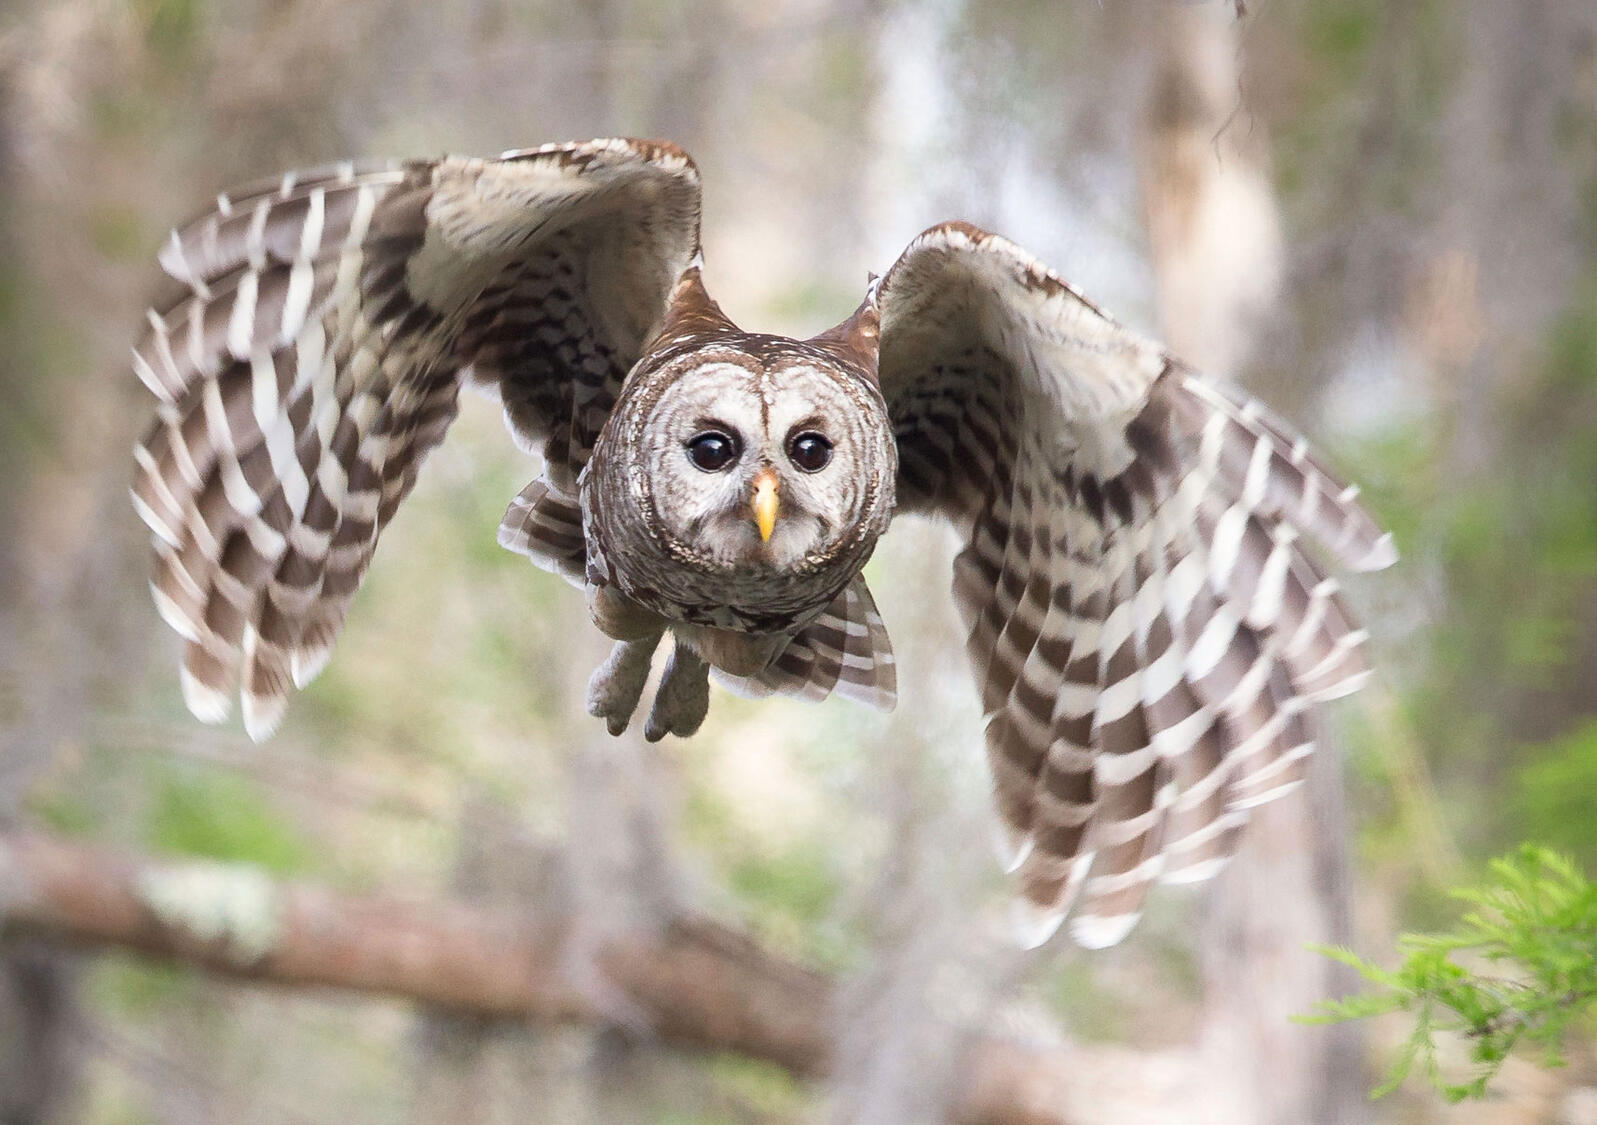 """Barred Owl flight is described as """"light, buoyant, and noiseless"""" as they fly between trees—or hover for 20 seconds to pounce on mousy prey. Sandra Rothenberg/Audubon Photography Awards"""